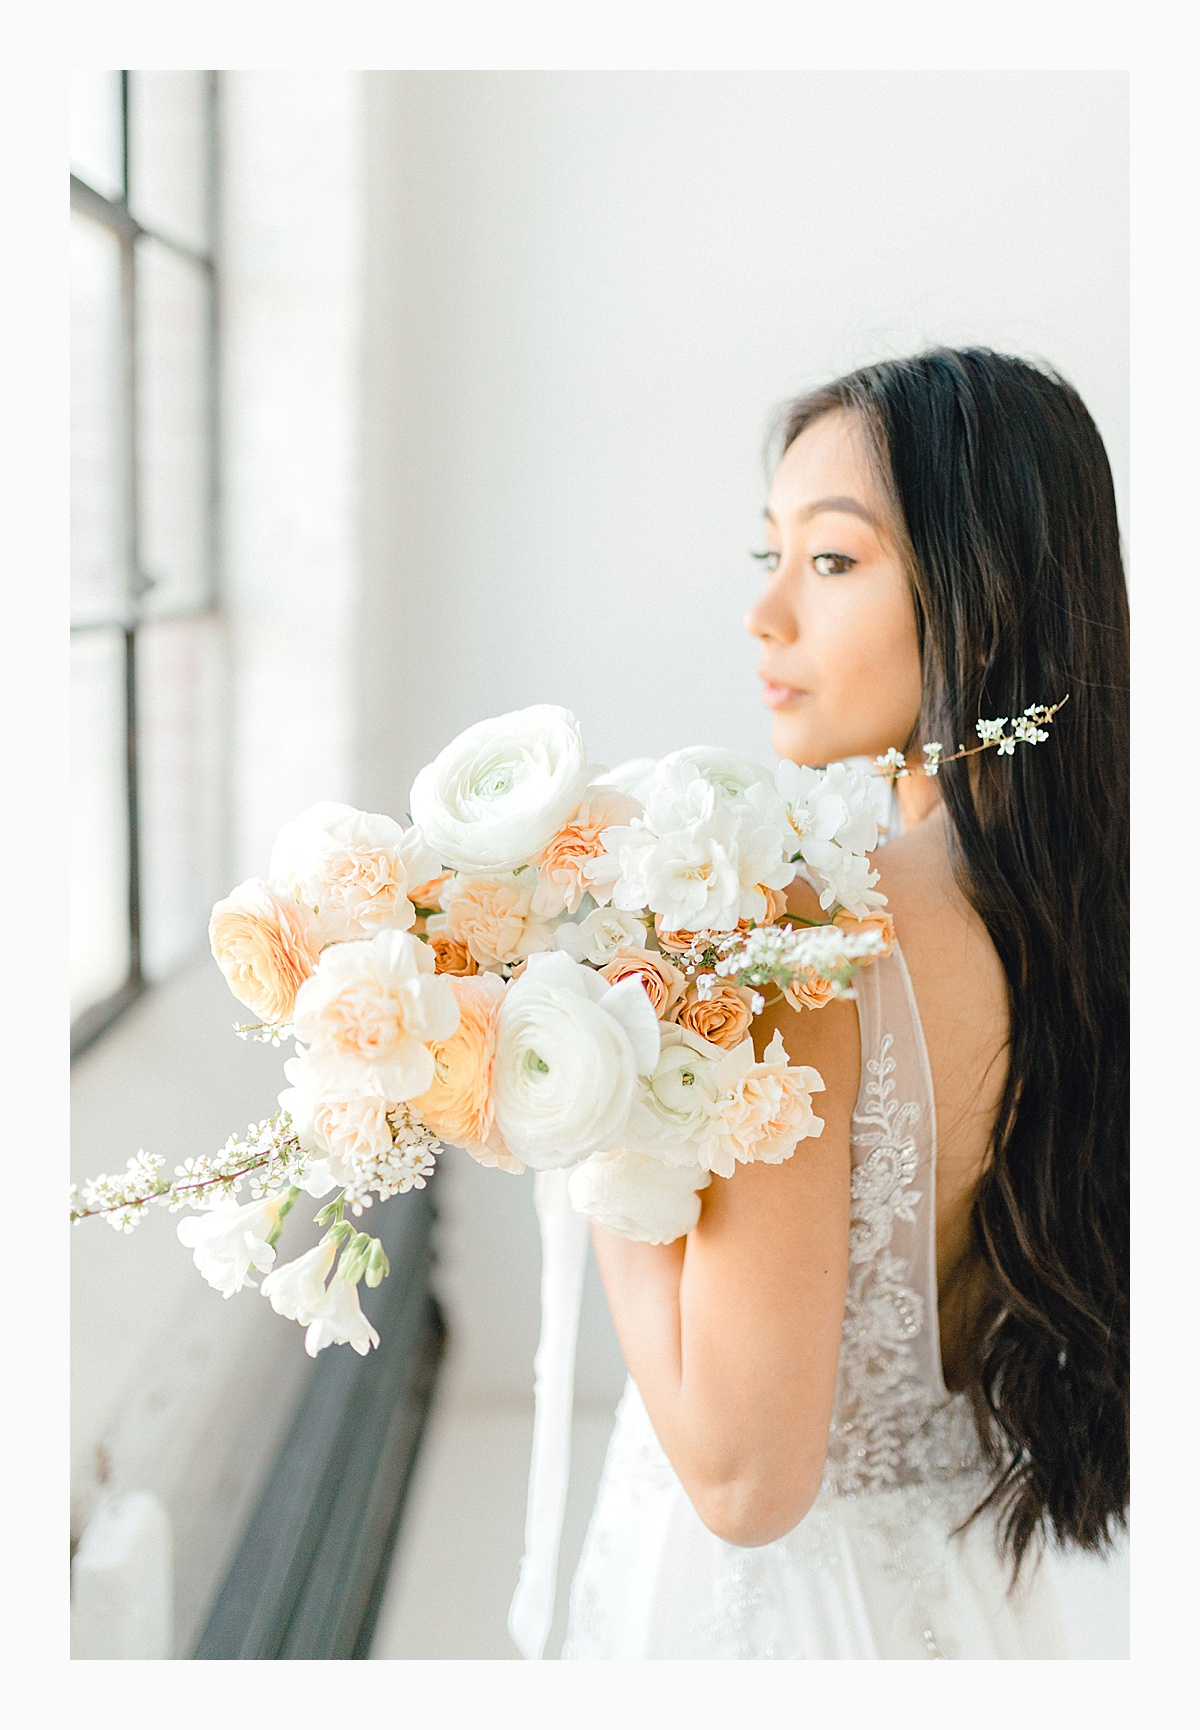 The Bemis Building in downtown Seattle is one of my favorite places to use for photo shoots!  This styled bridal shoot with touches of peach and white was dreamy.  #emmarosecompany #kindredpresets #seattlebride_0026.jpg